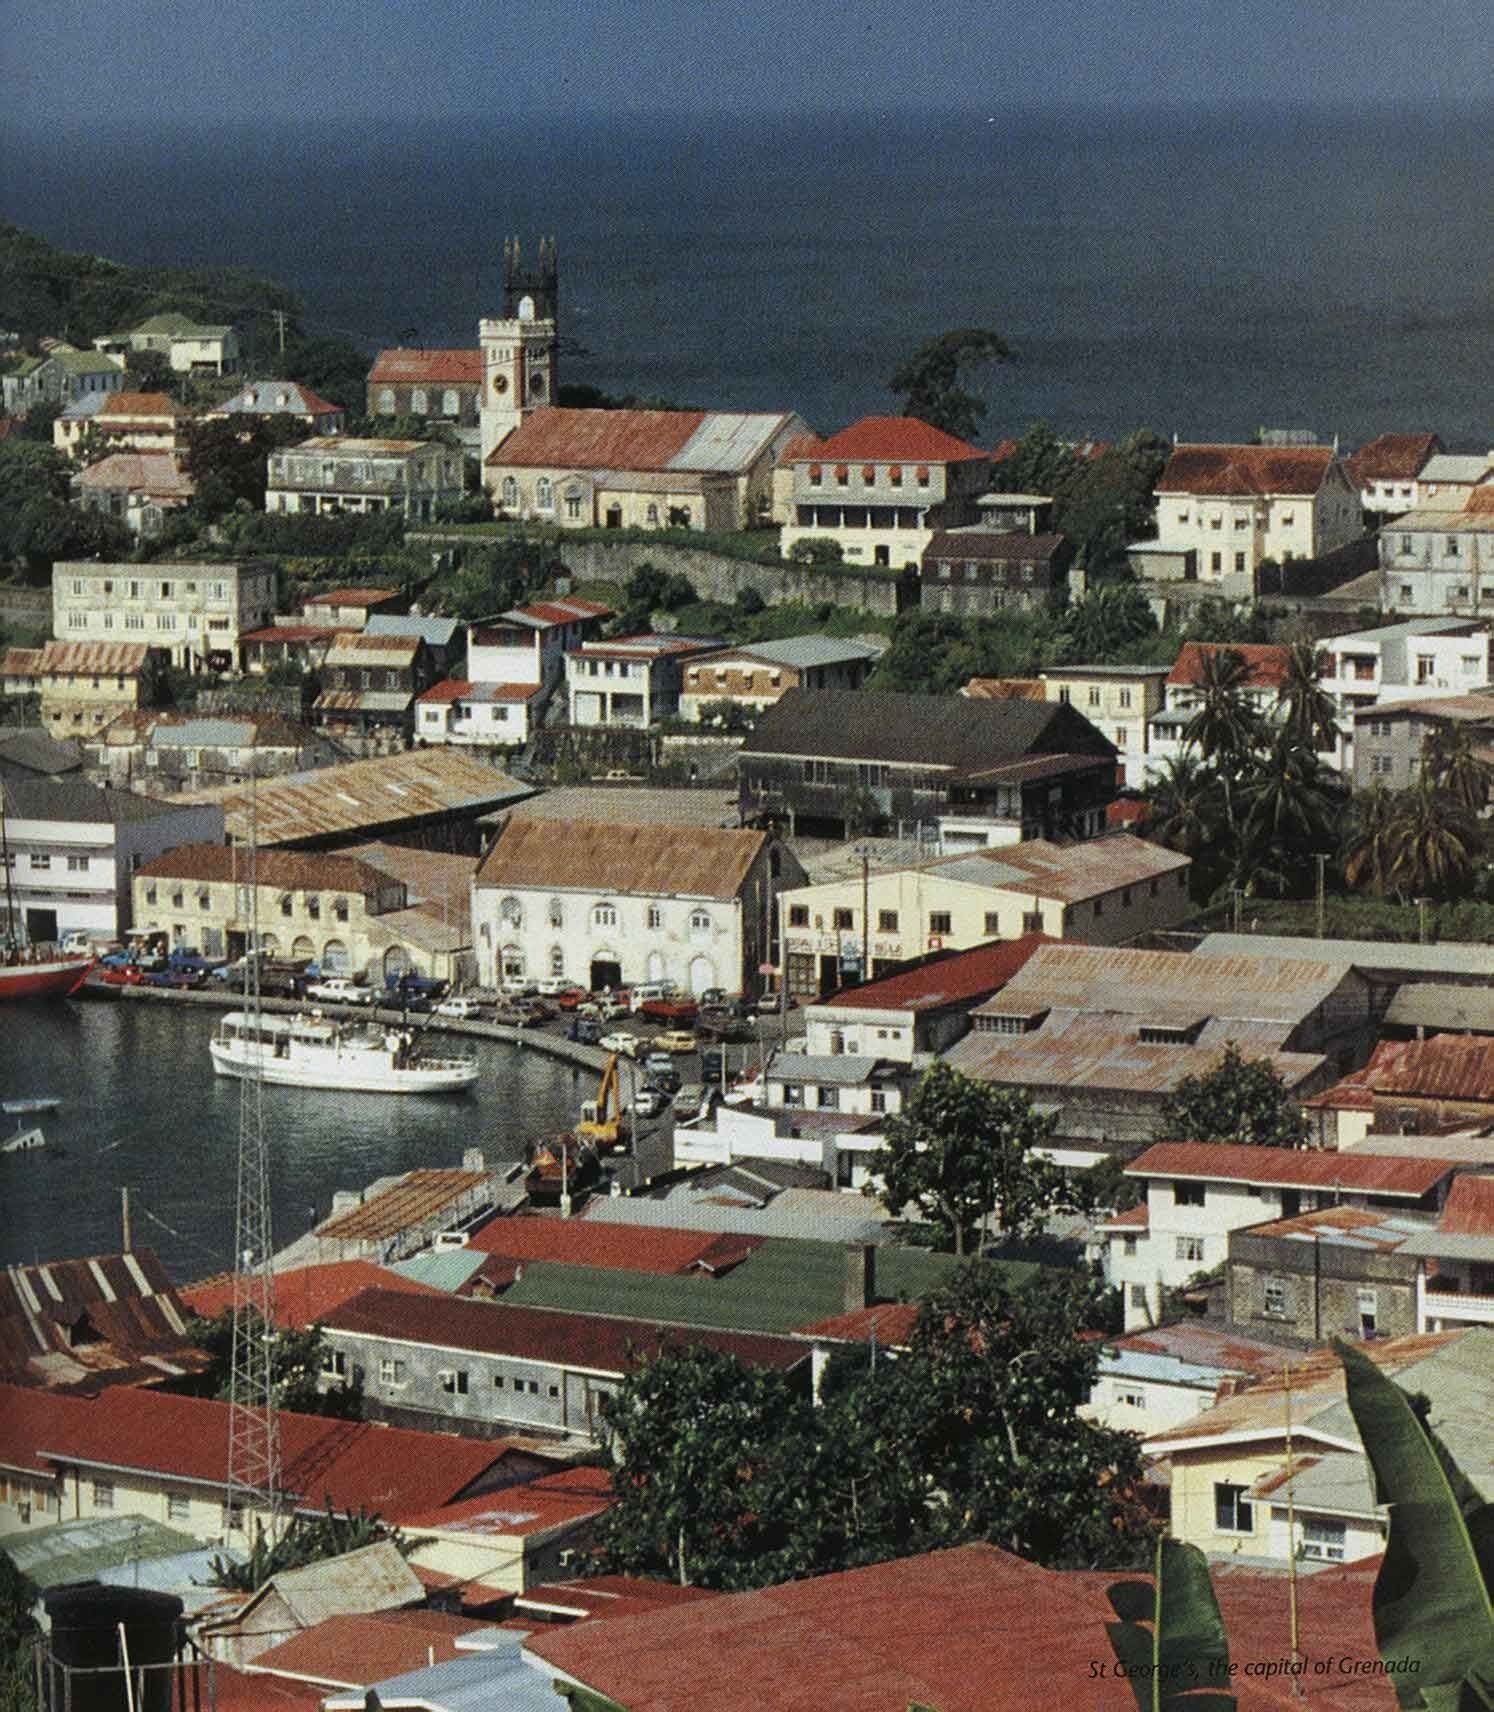 St. George's, the capital of Grenada. Photograph by Jim Rudin